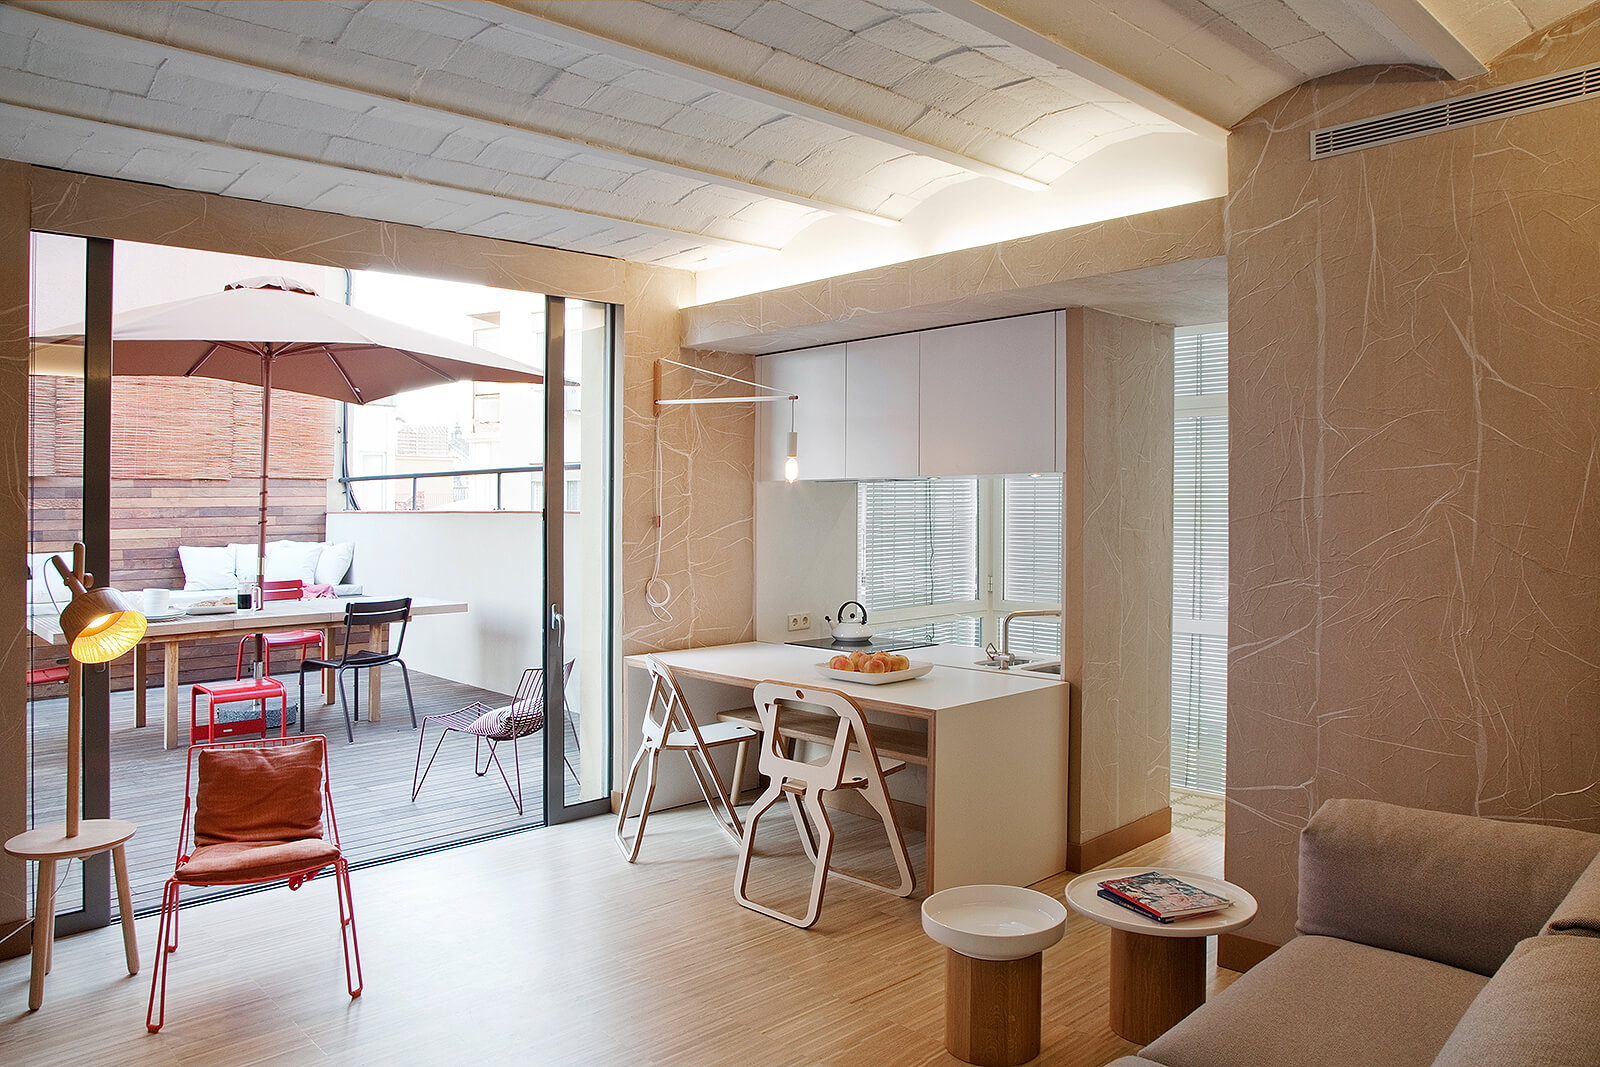 Playful Penthouse, Barcelona, Spain | vacation home rentals